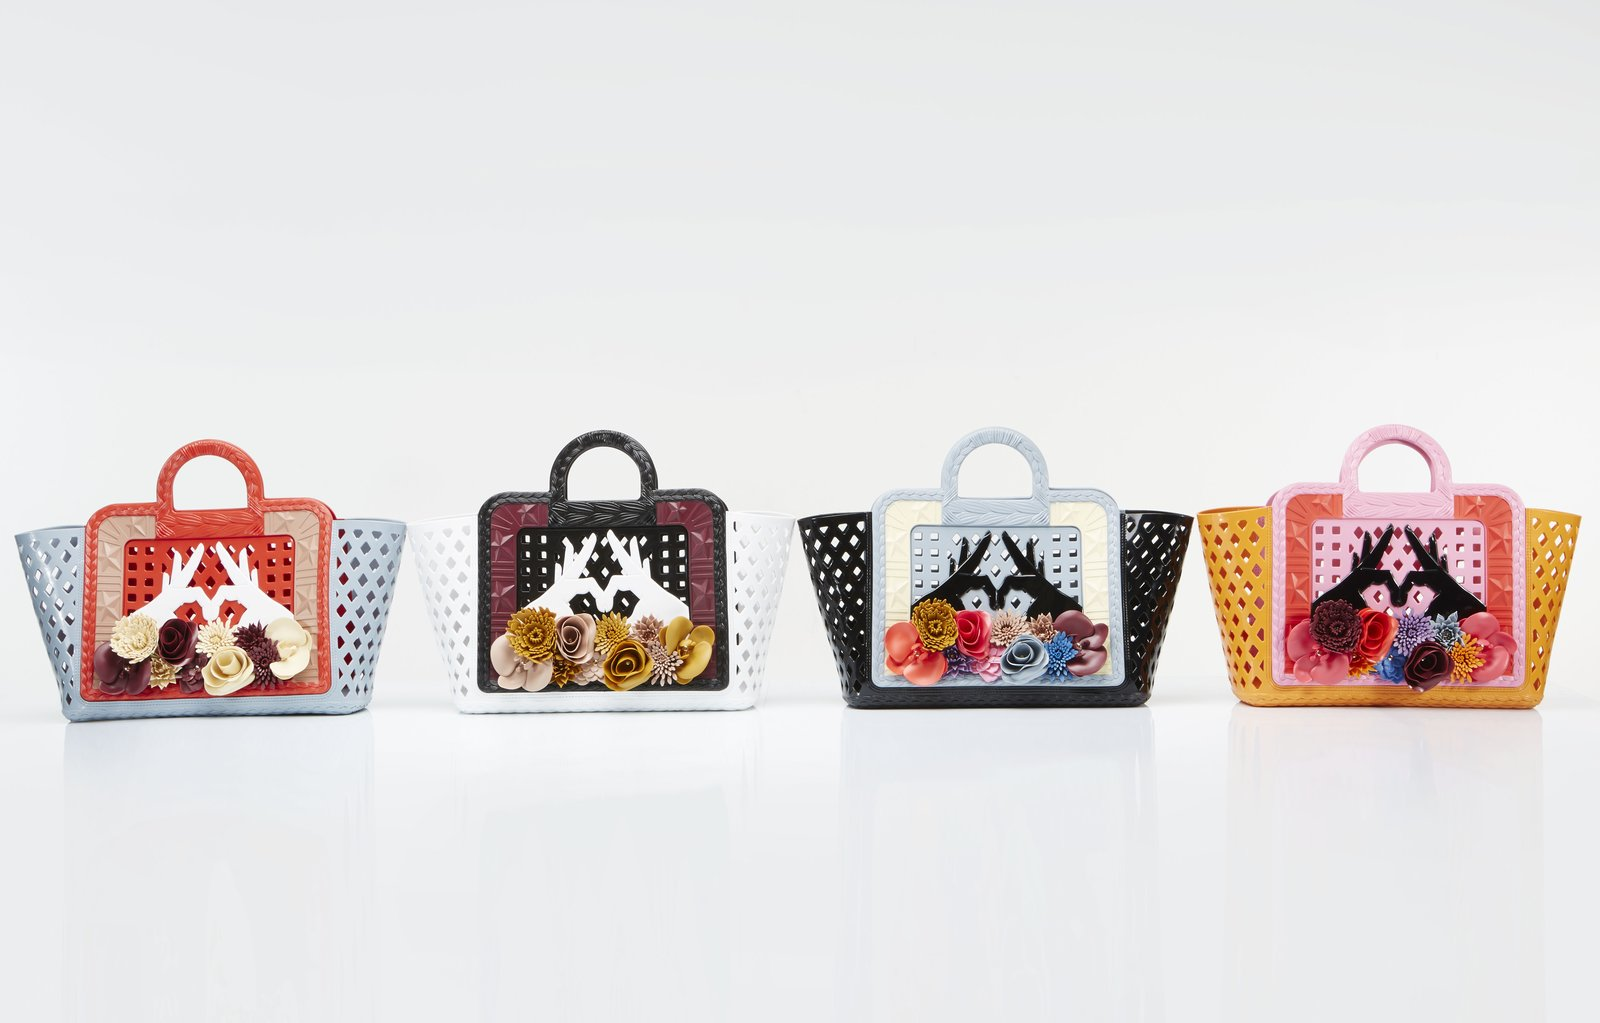 Continuing its ongoing collaborations with fashion designers, Kartell has just teamed with Paula Cademartori as part of a project with the Milanese department store La Rinascente. Called Parati, the capsule collection includes a series of colorful sandals and handbags (shown), made with injected plastic and inspired by Rio de Janeiro's Botanical Garden.  From the Editors' Inbox: October 2016